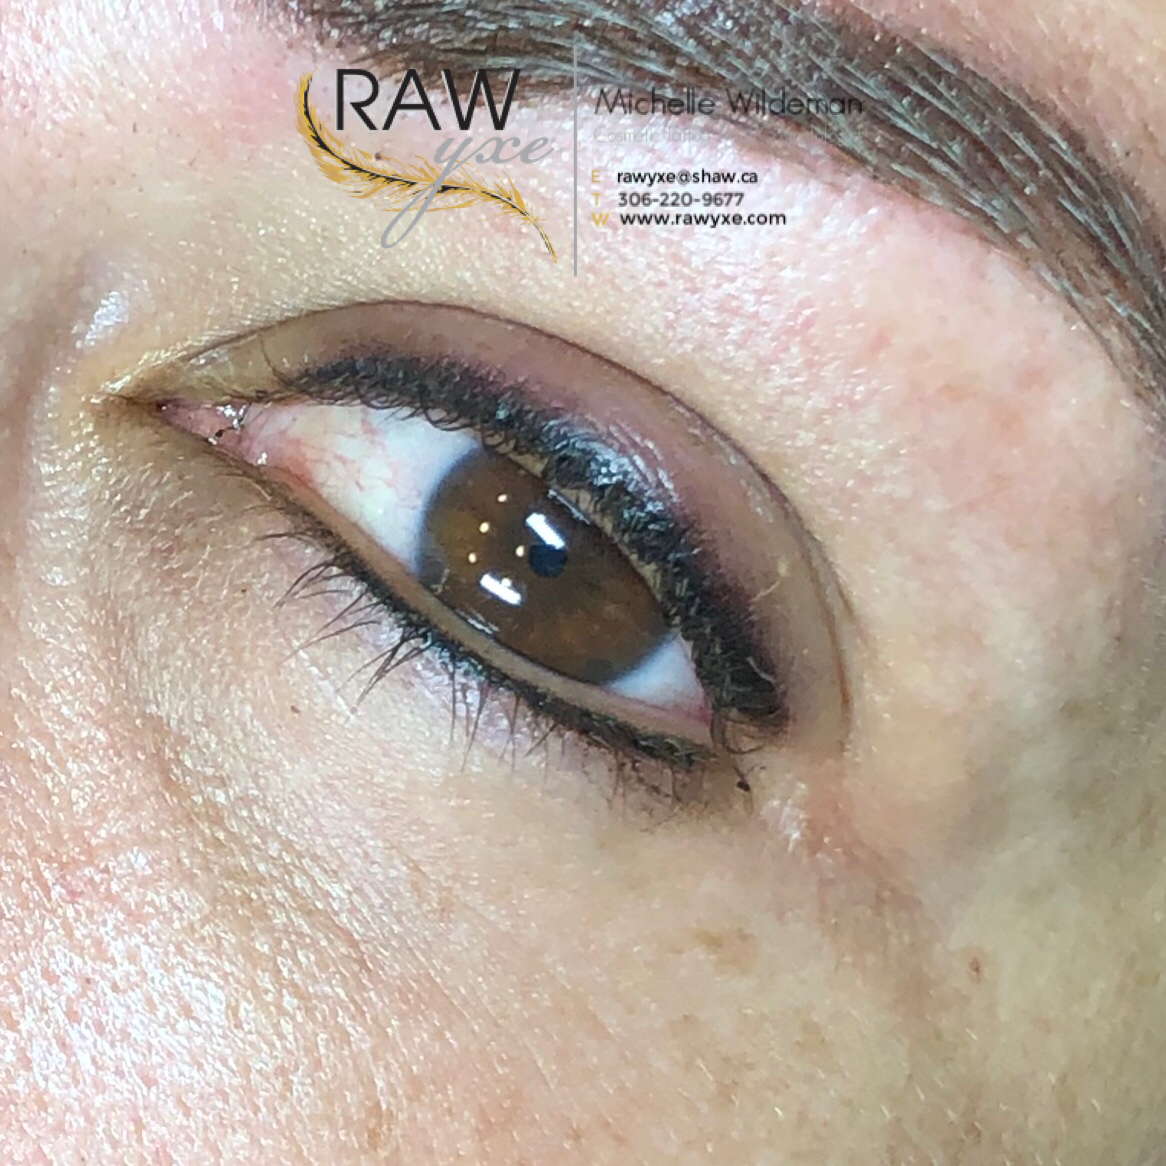 Upper and Lower Smoky Lash Enhancement with a Baby Wedge